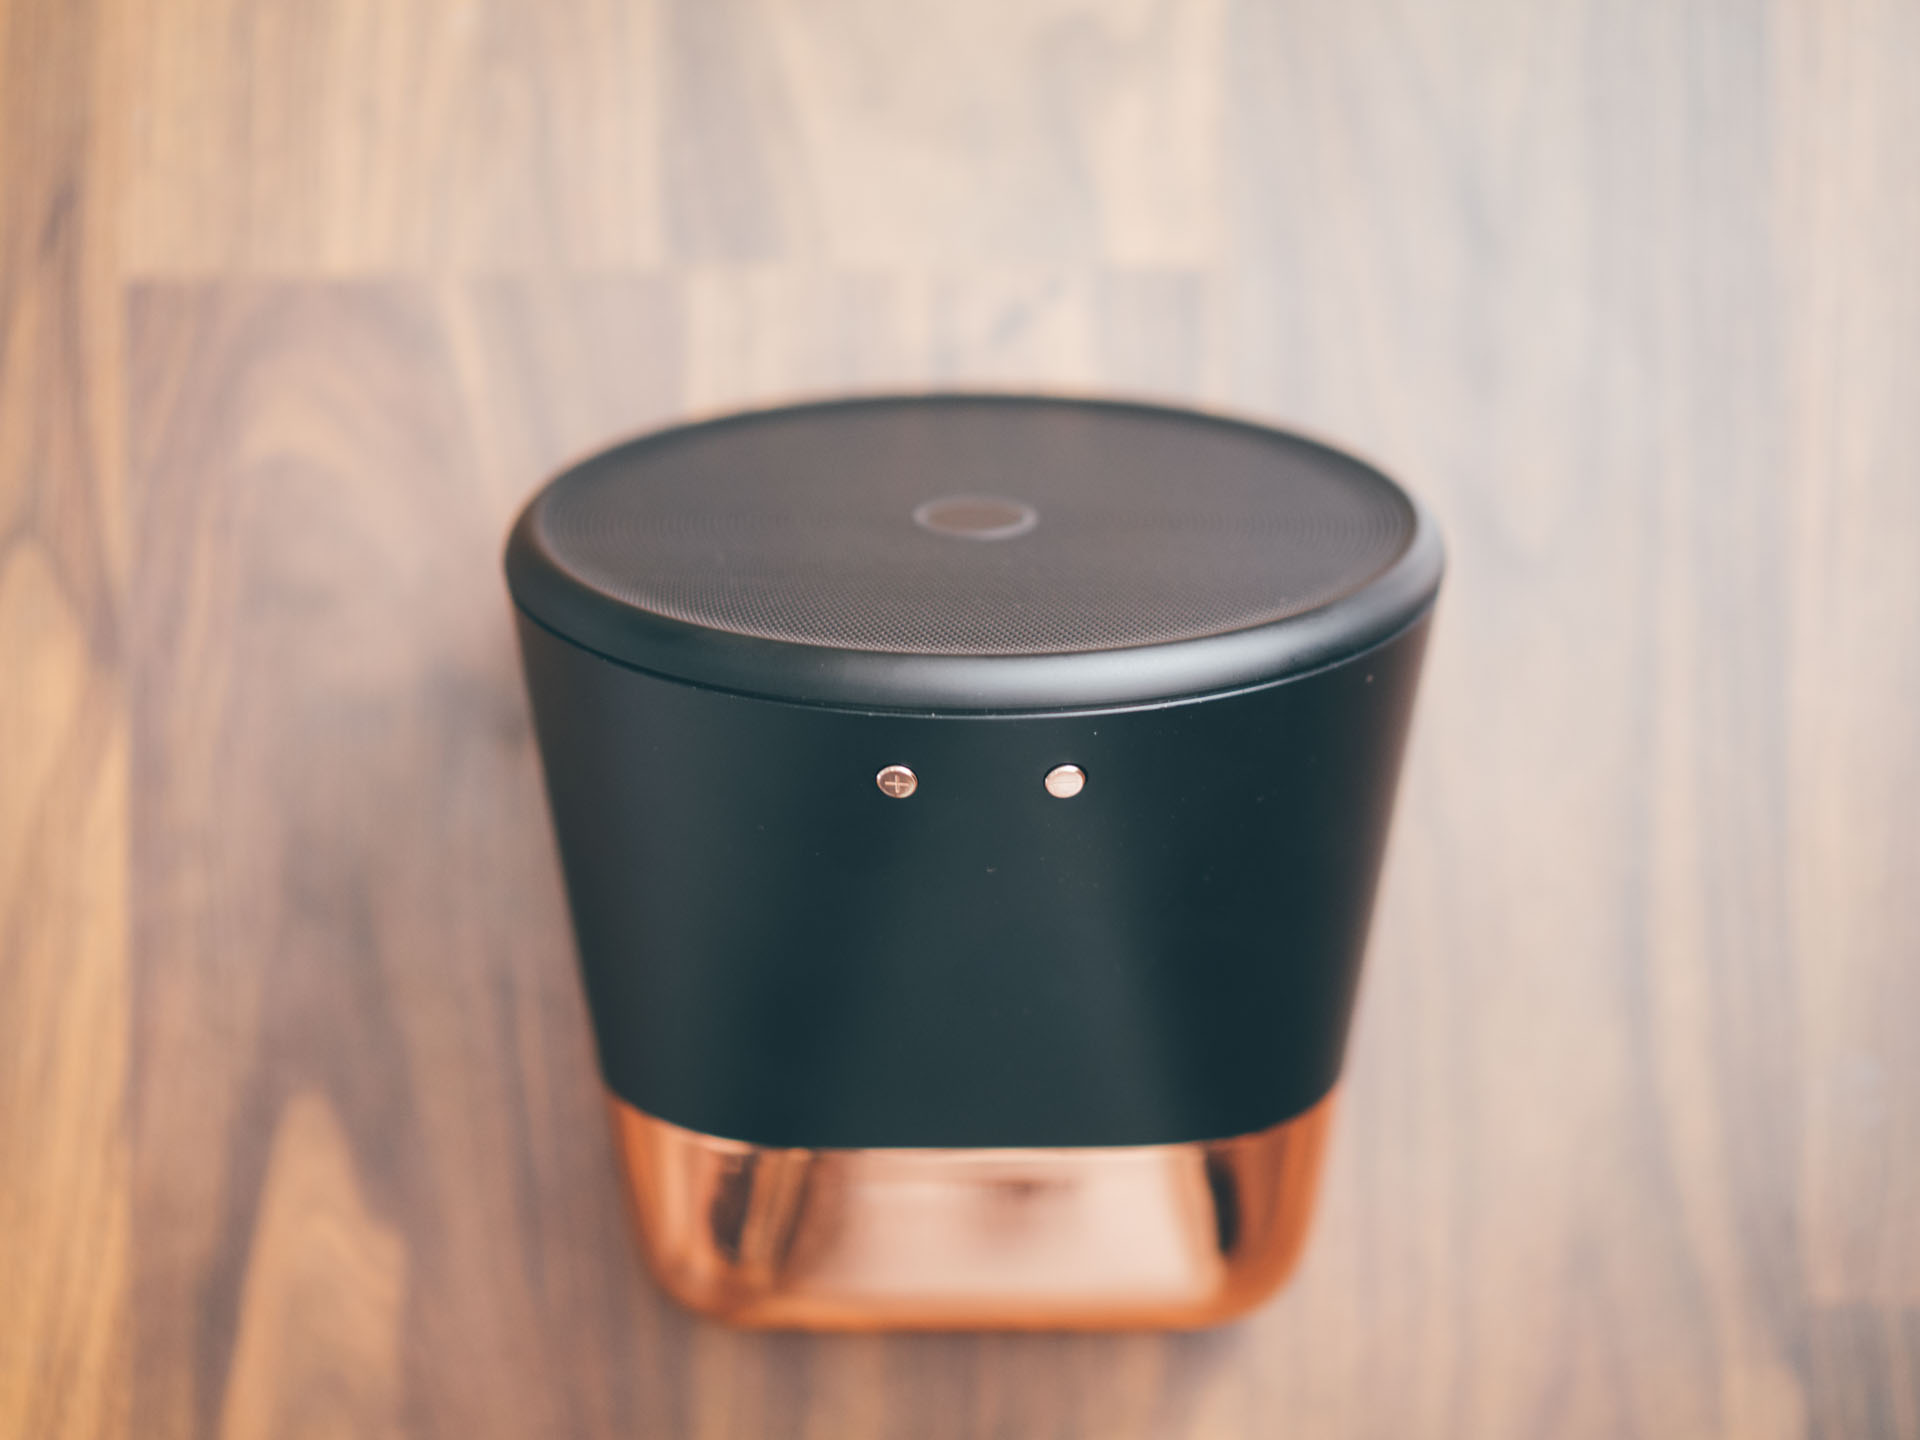 The Aether Cone is a wireless (but not Bluetooth) speaker. It'll play any music via AirPlay, or use the speaker itself to play songs from your Rdio collection.